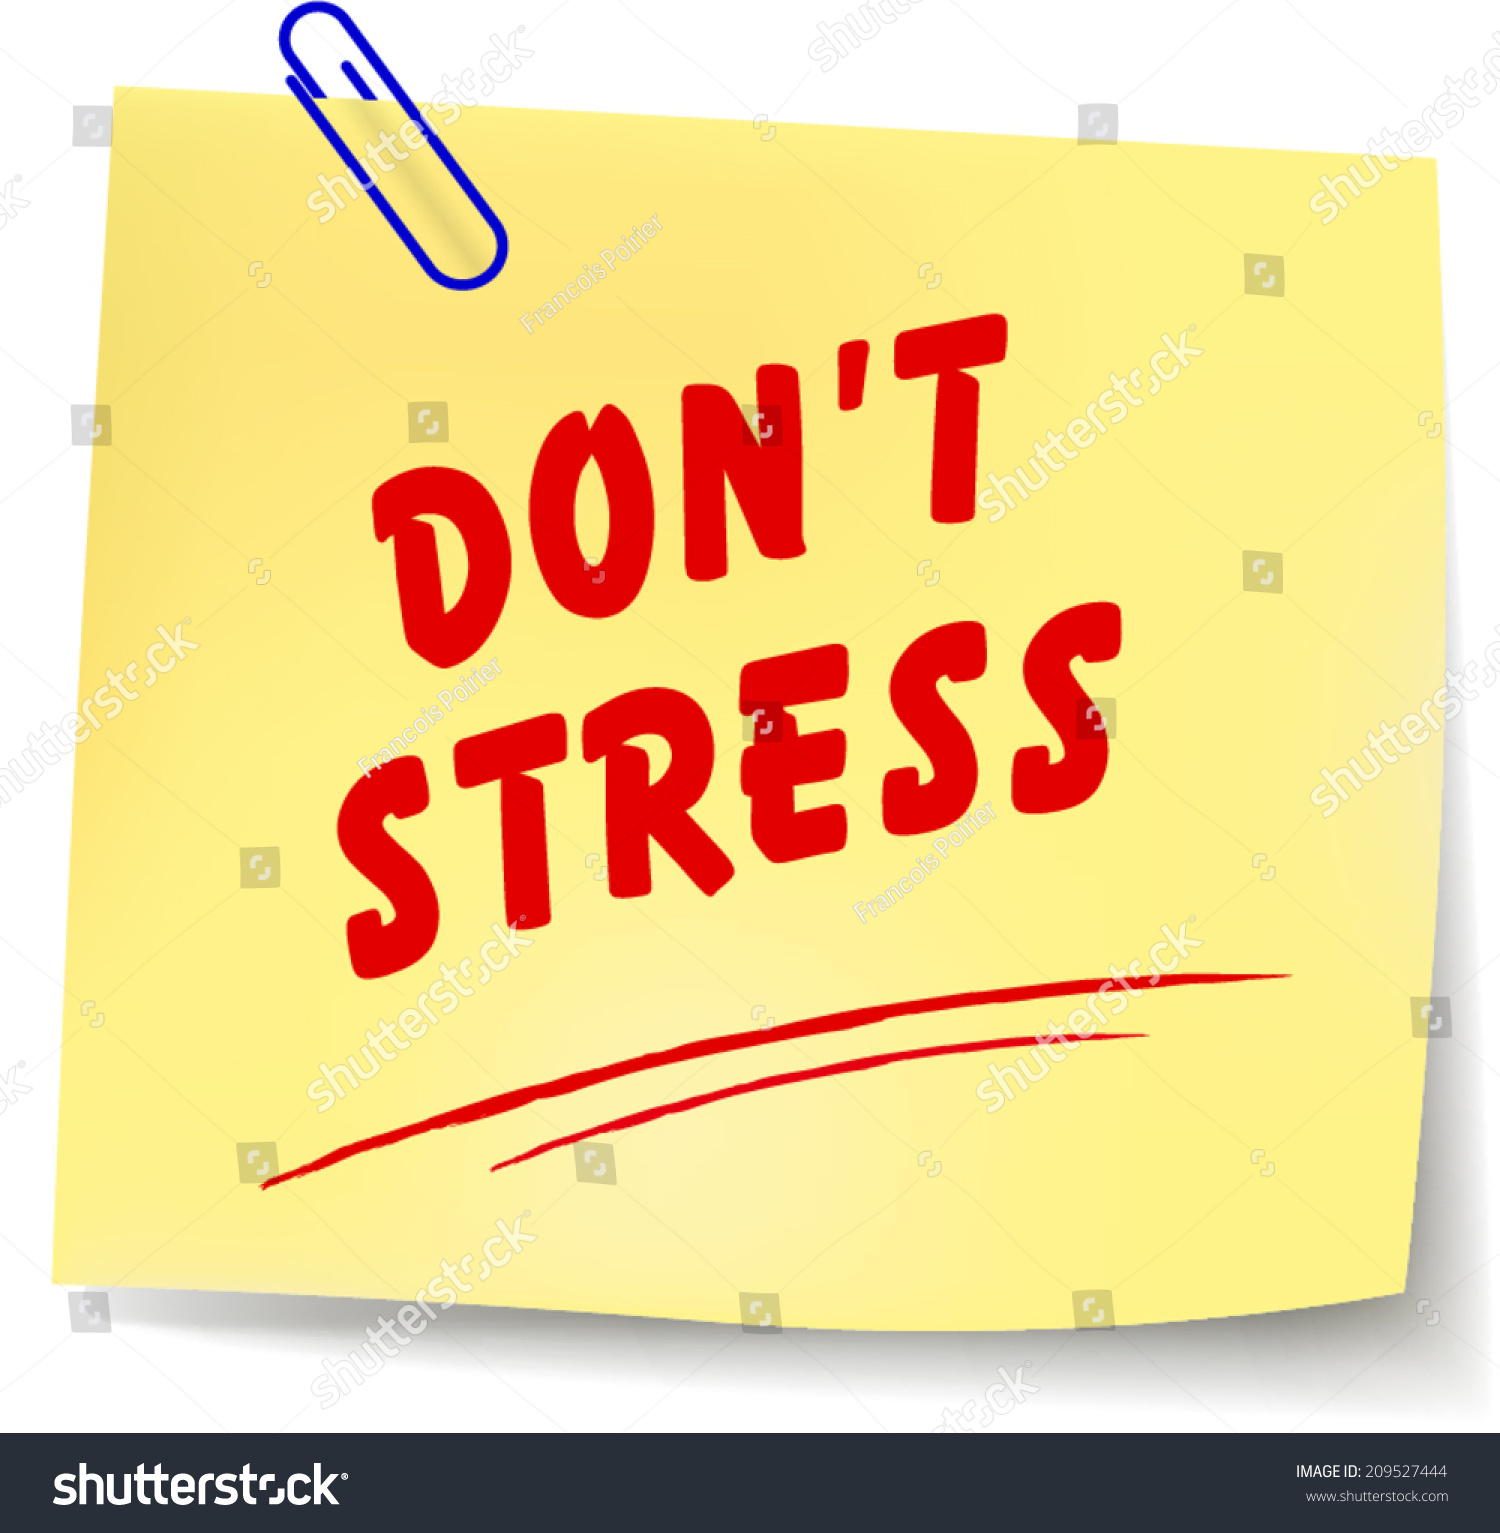 a paper on stress 10 introduction we generally use the word stress when we feel that everything seems to have become too much, we are overloaded and wonder whether we really can cope.